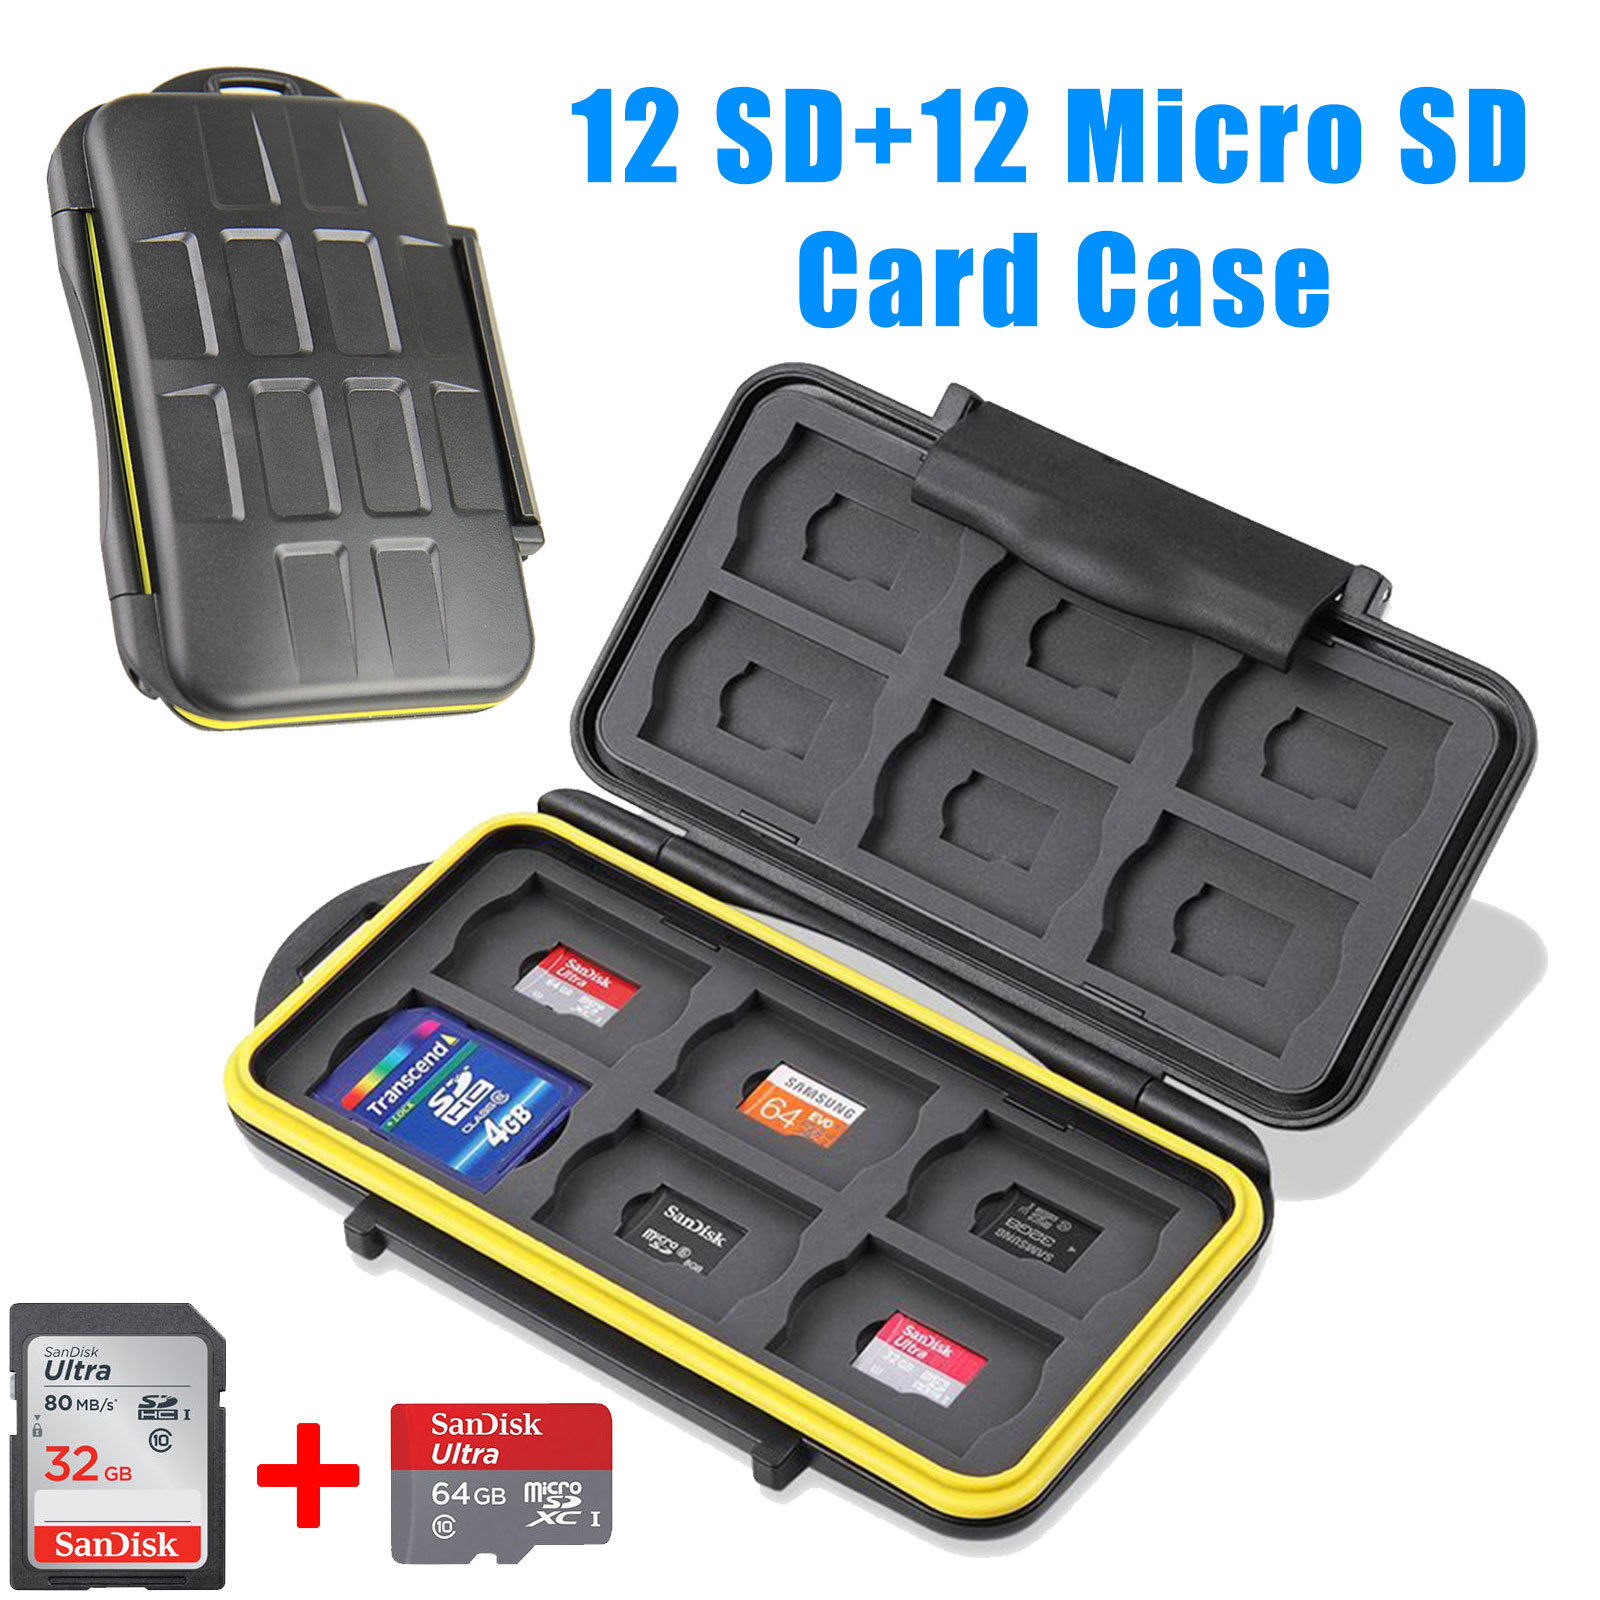 TSV Water-Resistant 24 Slots Memory Card Carrying Cases Professional Anti-shock Holder Storage SD SDHC SDXC and Micro SD TF Cards Protector Cover With Carabiner & Card Reader